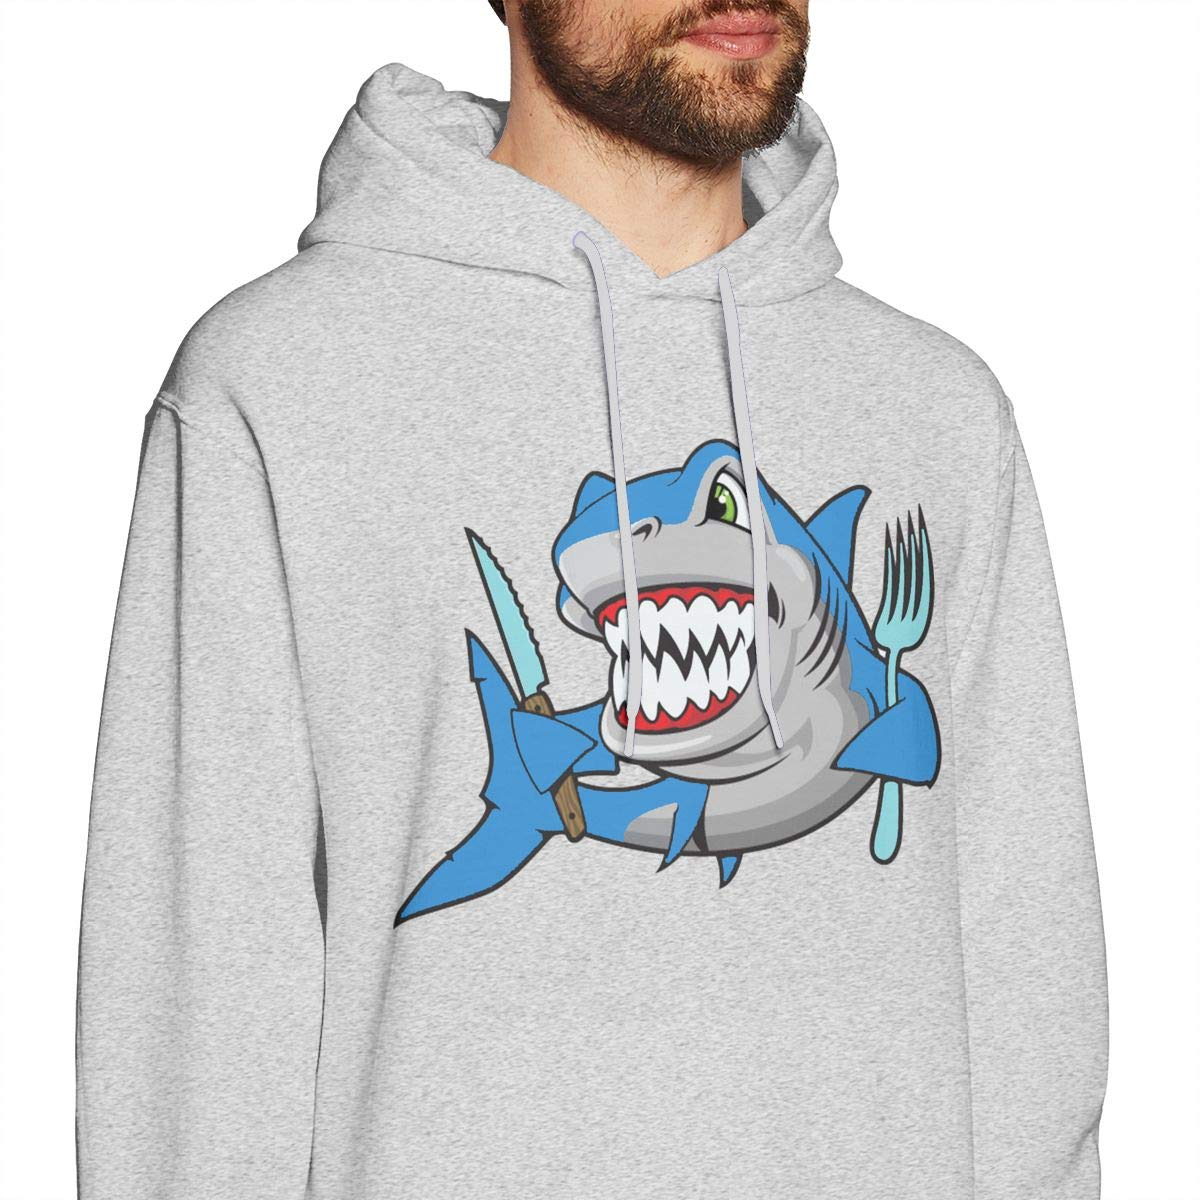 Mens Hooded Sweatshirt European Version of The Loose Hooded Fashion Tide Coat Great White Shark Logo Gray